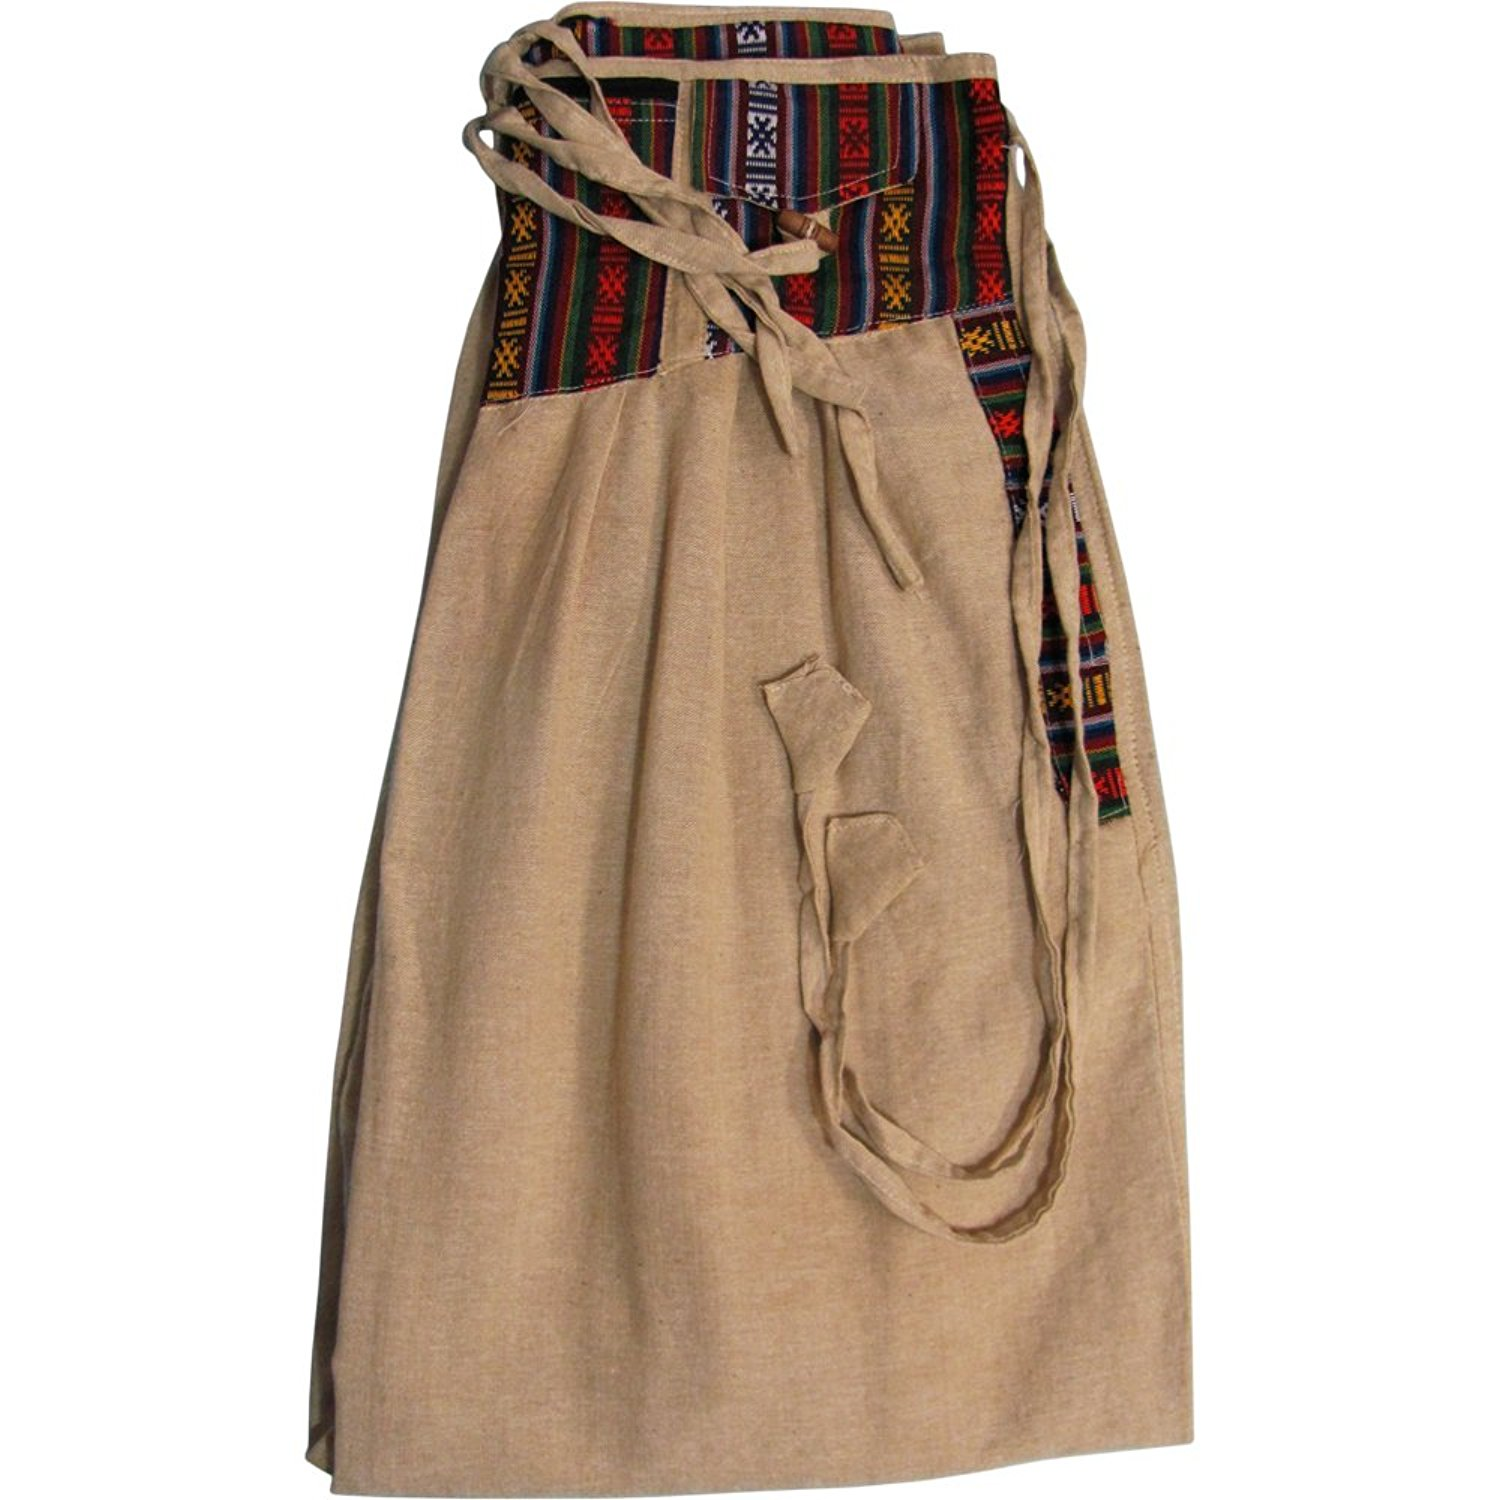 Men's 5-pocket Fannie-Pack Waist Bohemian Ethnic Cotton Harem Gypsy Pants - Olive Green